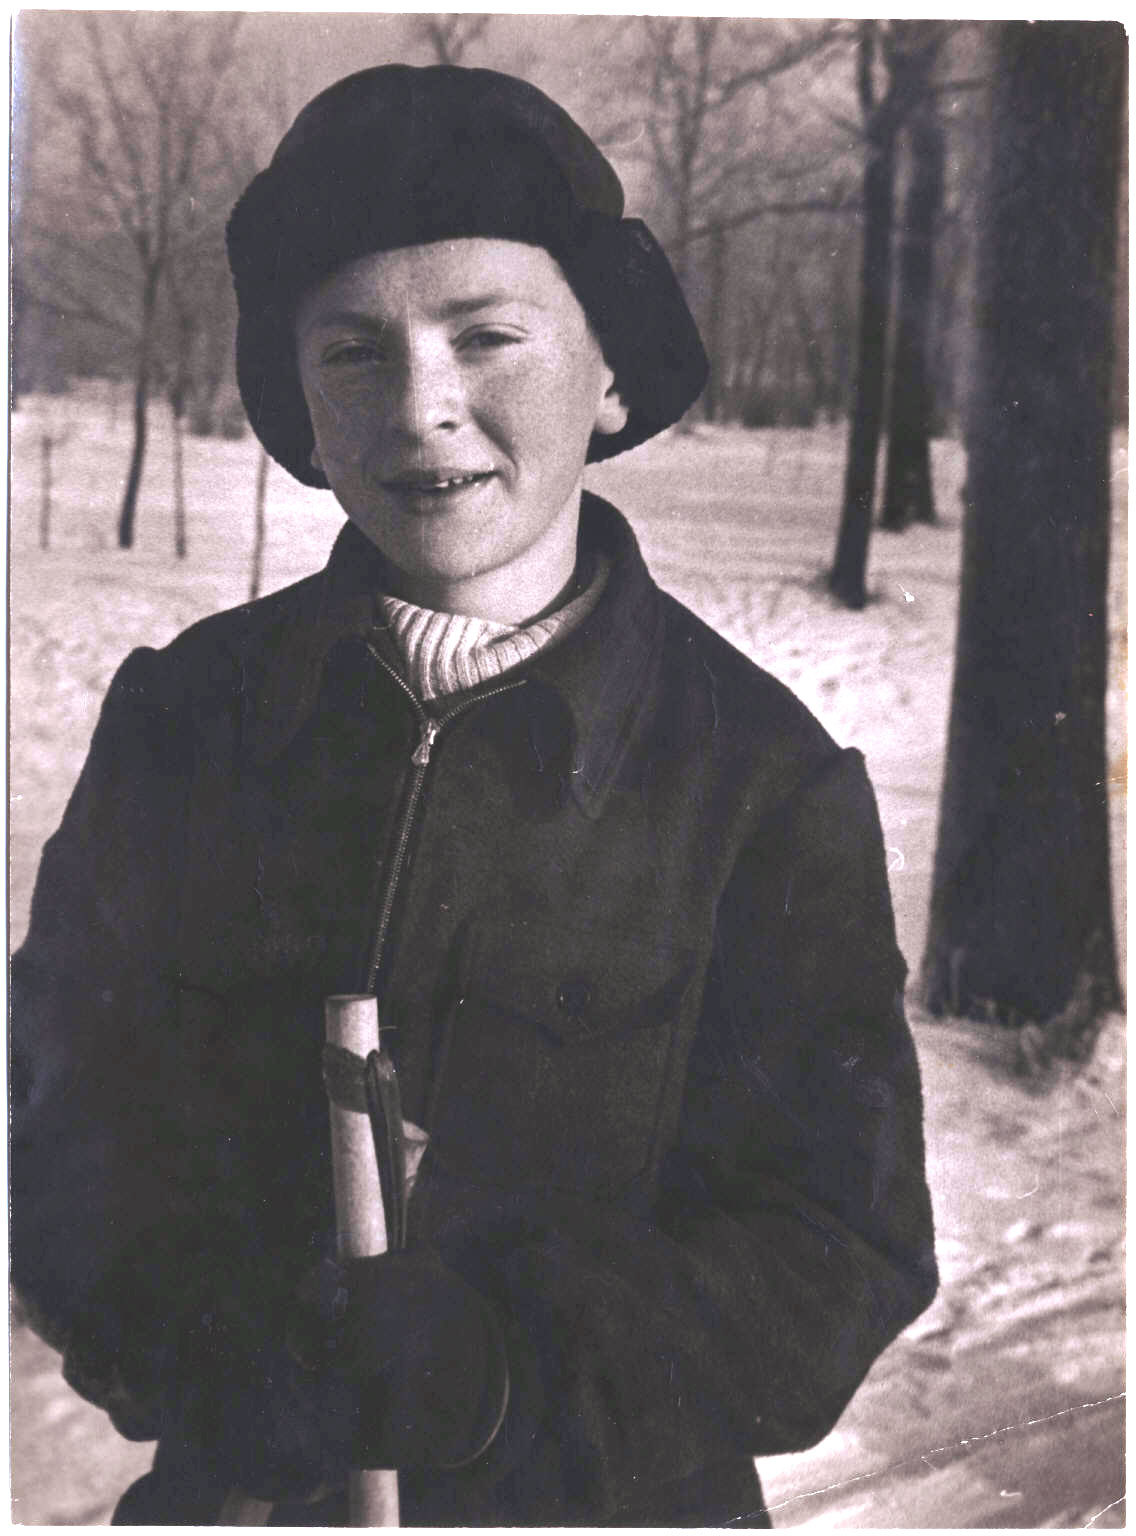 Joseph Brodsky as a young boy, winter